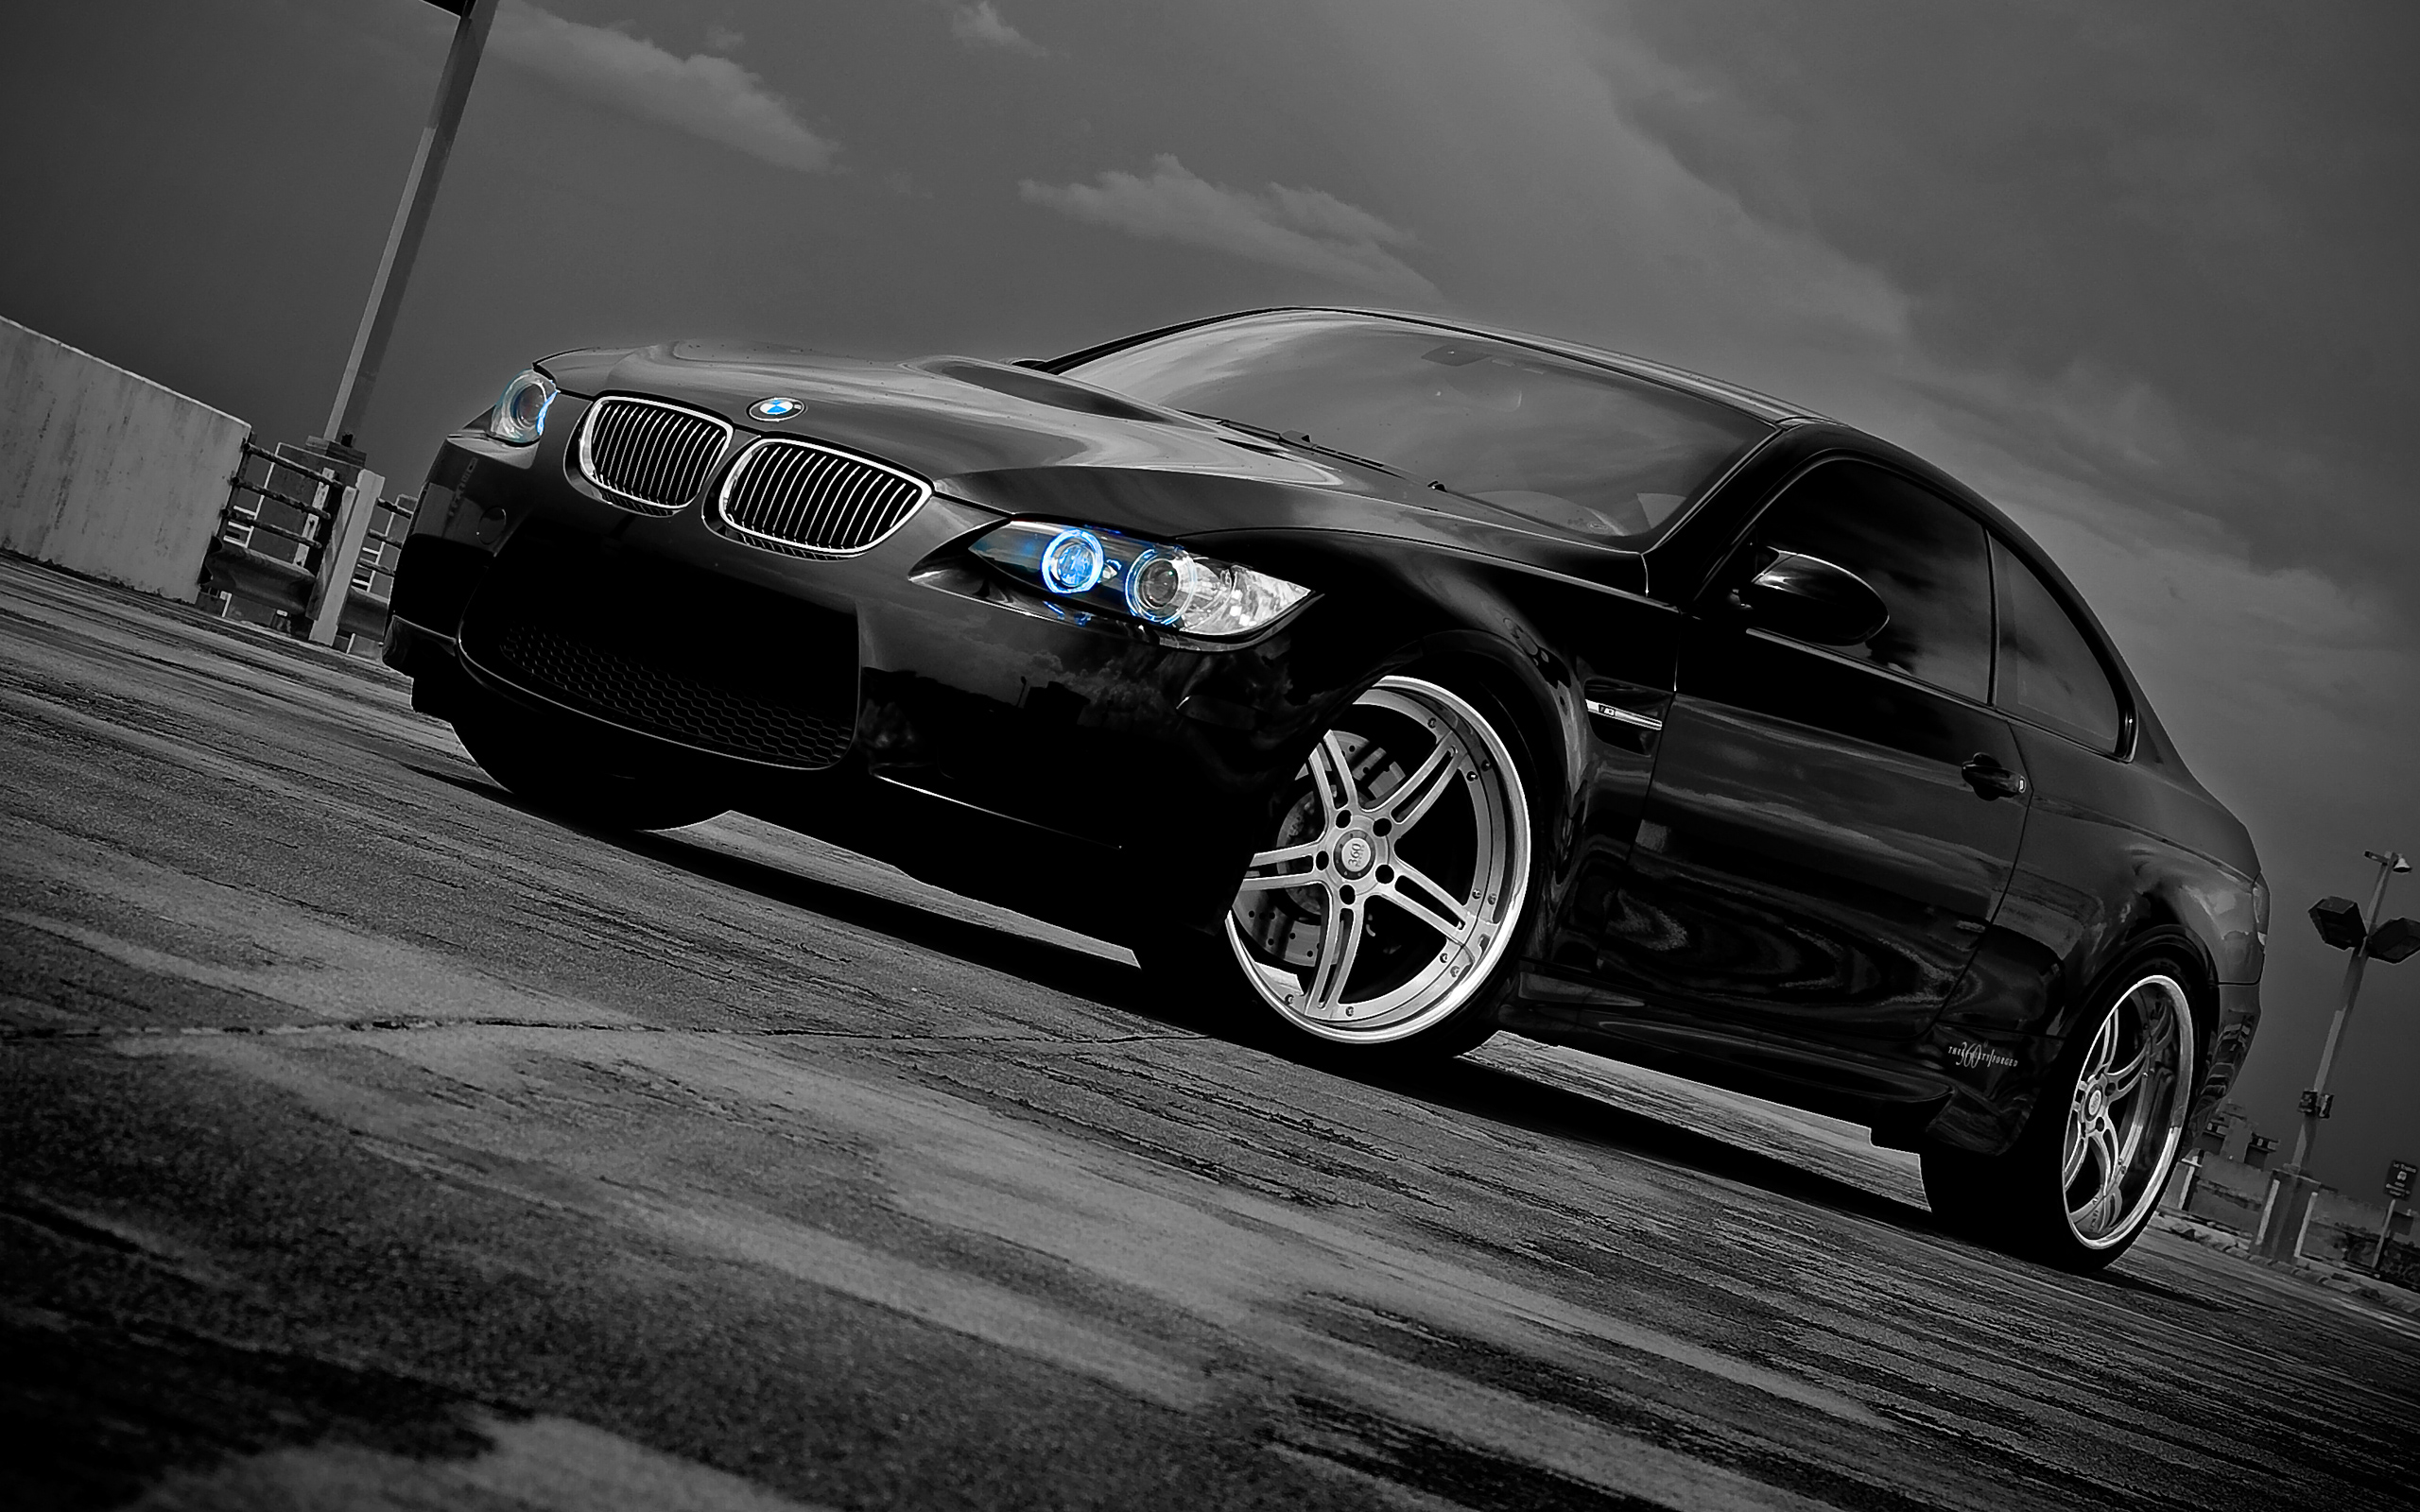 BMW Forged Wheels Wallpaper